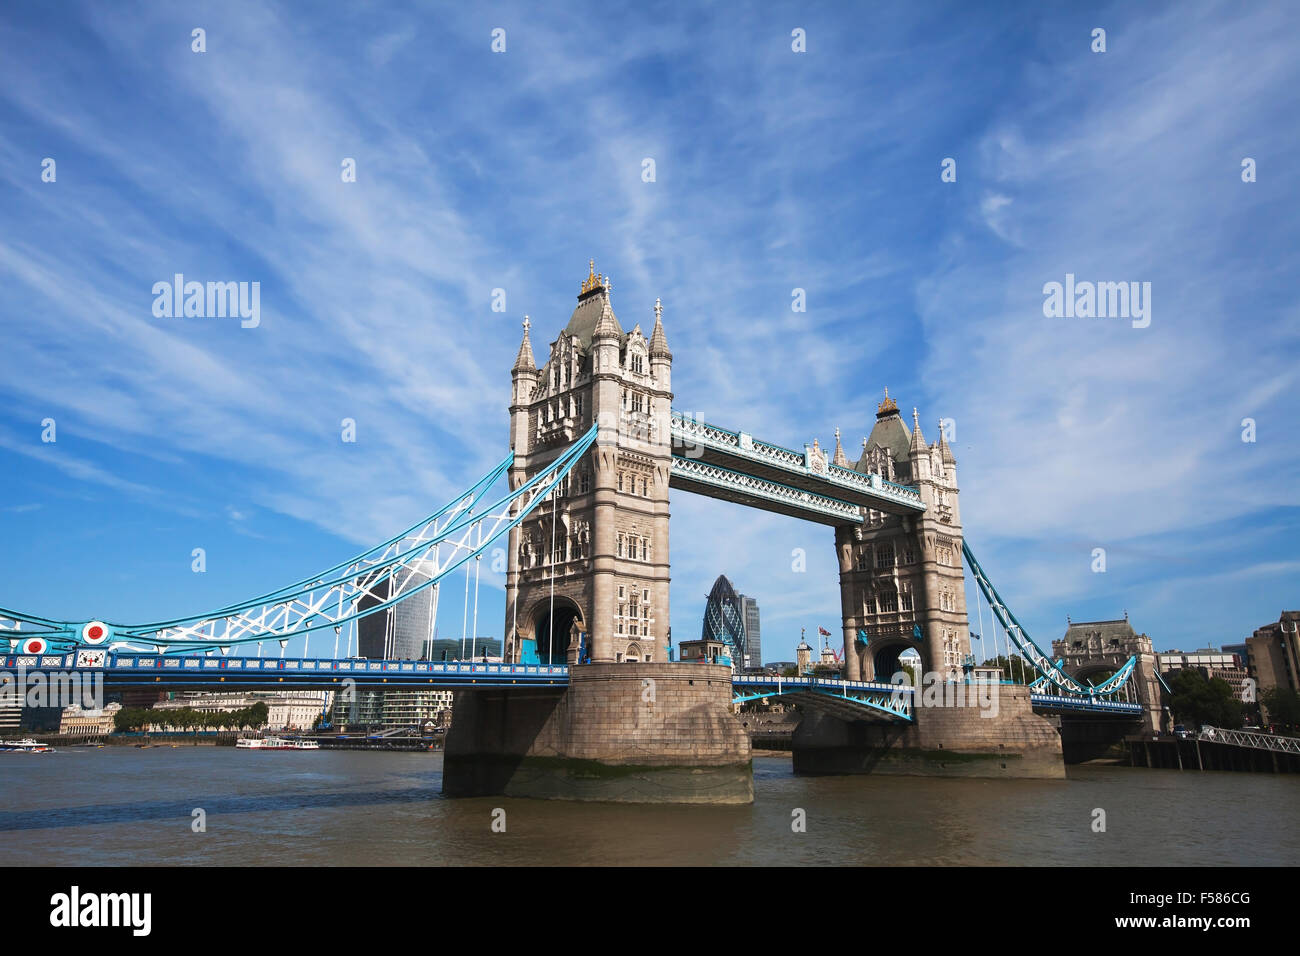 Tower Bridge in London with blue sky - Stock Image